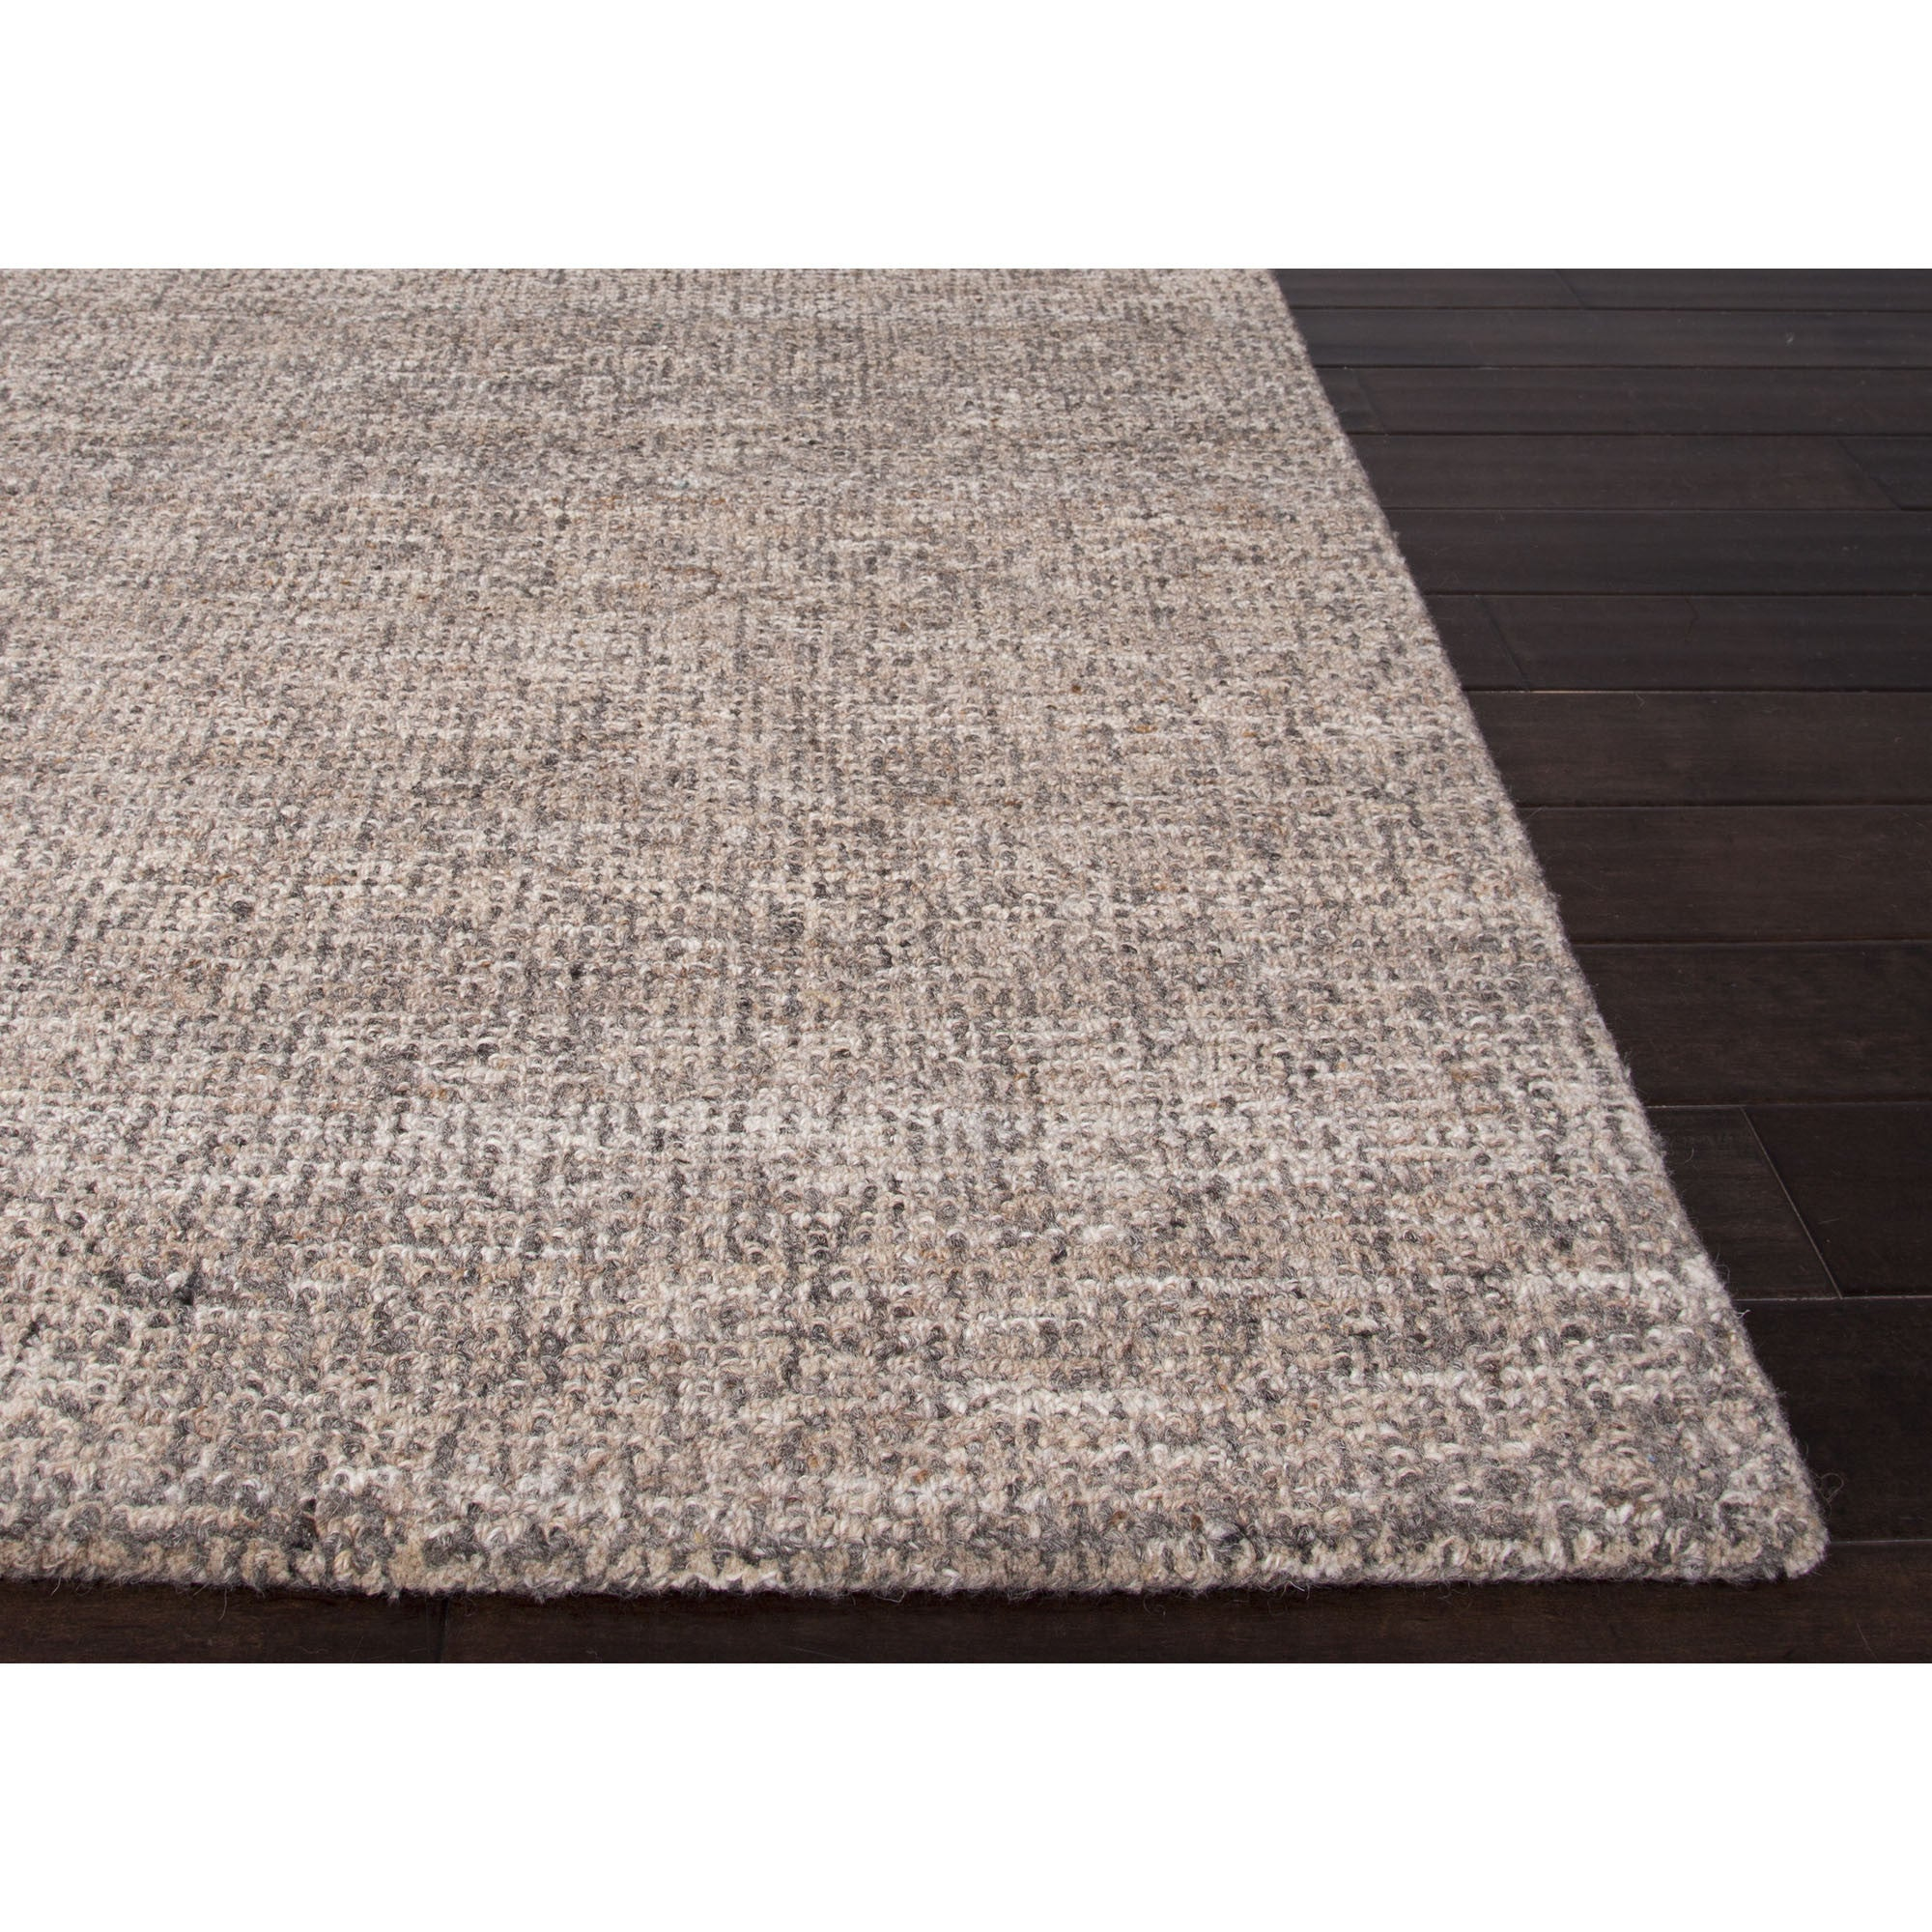 Jaipur Rugs Solid Solid Pattern Taupe Ivory Wool Area Rug